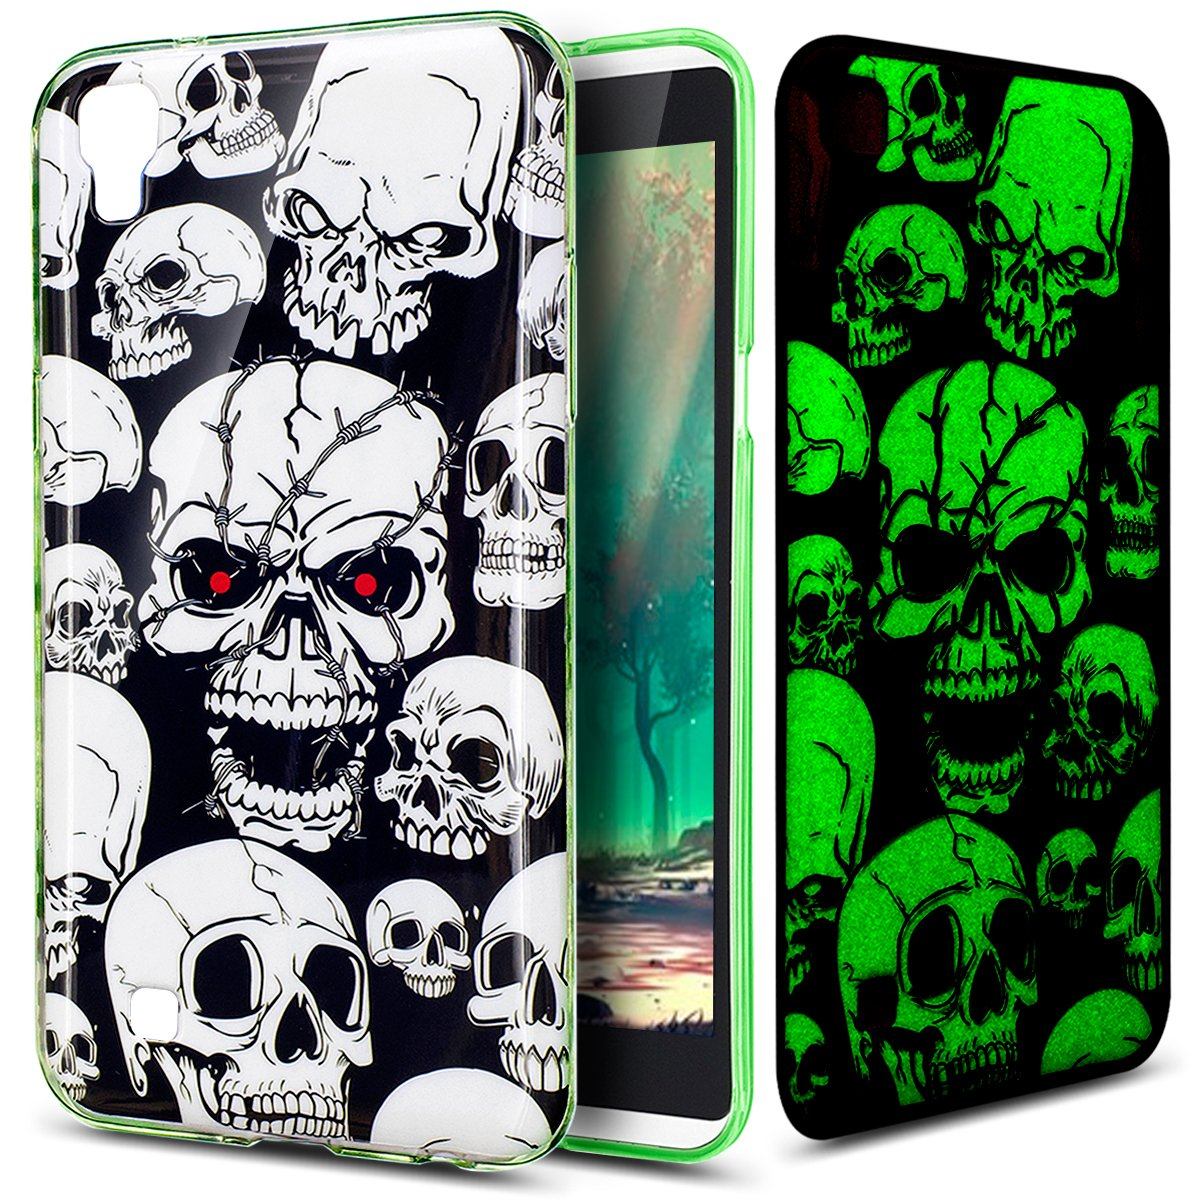 Lg X Power Caselg Coverikasus Ultra Thin Soft Peonia Electroplating Transparent Ultrathin Case Samsung J7 Pro 2017 Tpu Caseart Painted Luminous Seriessoft Silicone Rubber Bumper Casecrystal Clear